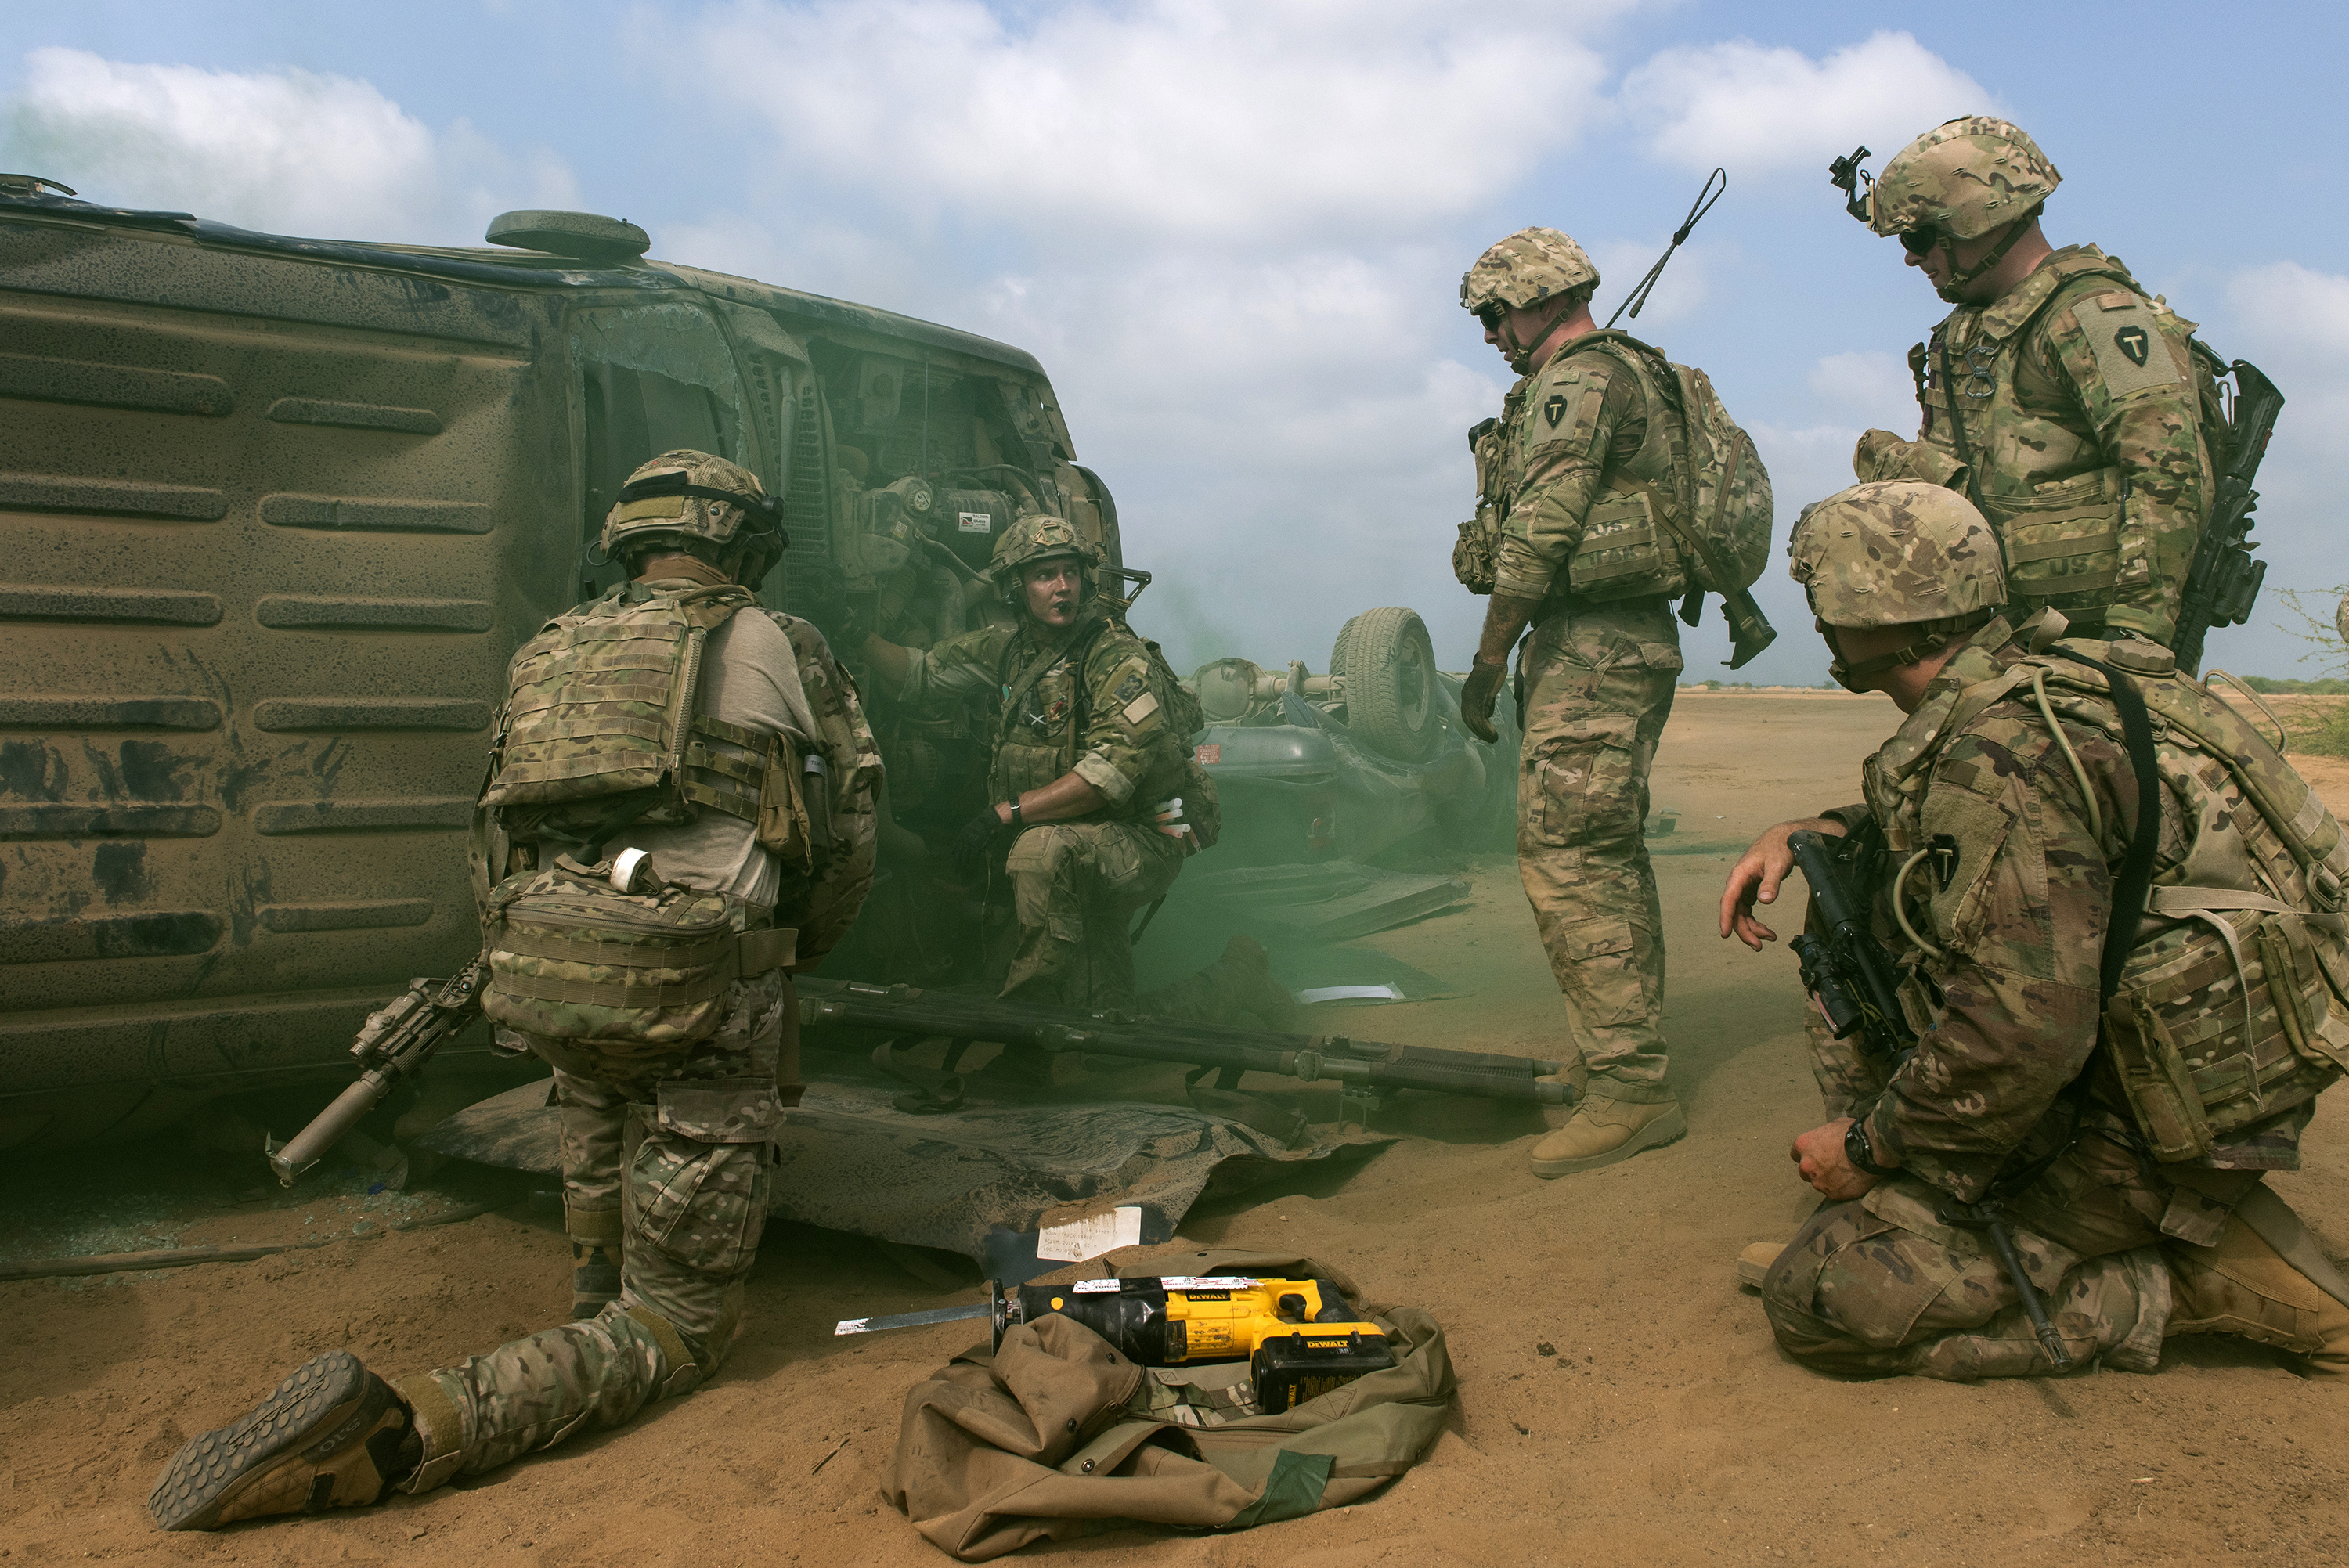 U.S. Air Force Pararescuemen from the 82nd Expeditionary Rescue Squadron and U.S. Soldiers with 3rd Battalion, 144th Infantry Regiment, Texas Army National Guard, prepare to move a simulated casualty onto a litter in Djibouti City, Djibouti, April 24, 2018. As part of a joint mass-casualty training exercise, service members performed various tasks in order to locate, secure and rescue simulated casualties. (U.S. Air National Guard photo by Master Sgt. Sarah Mattison) (Portions of this image were obscured for security reasons)